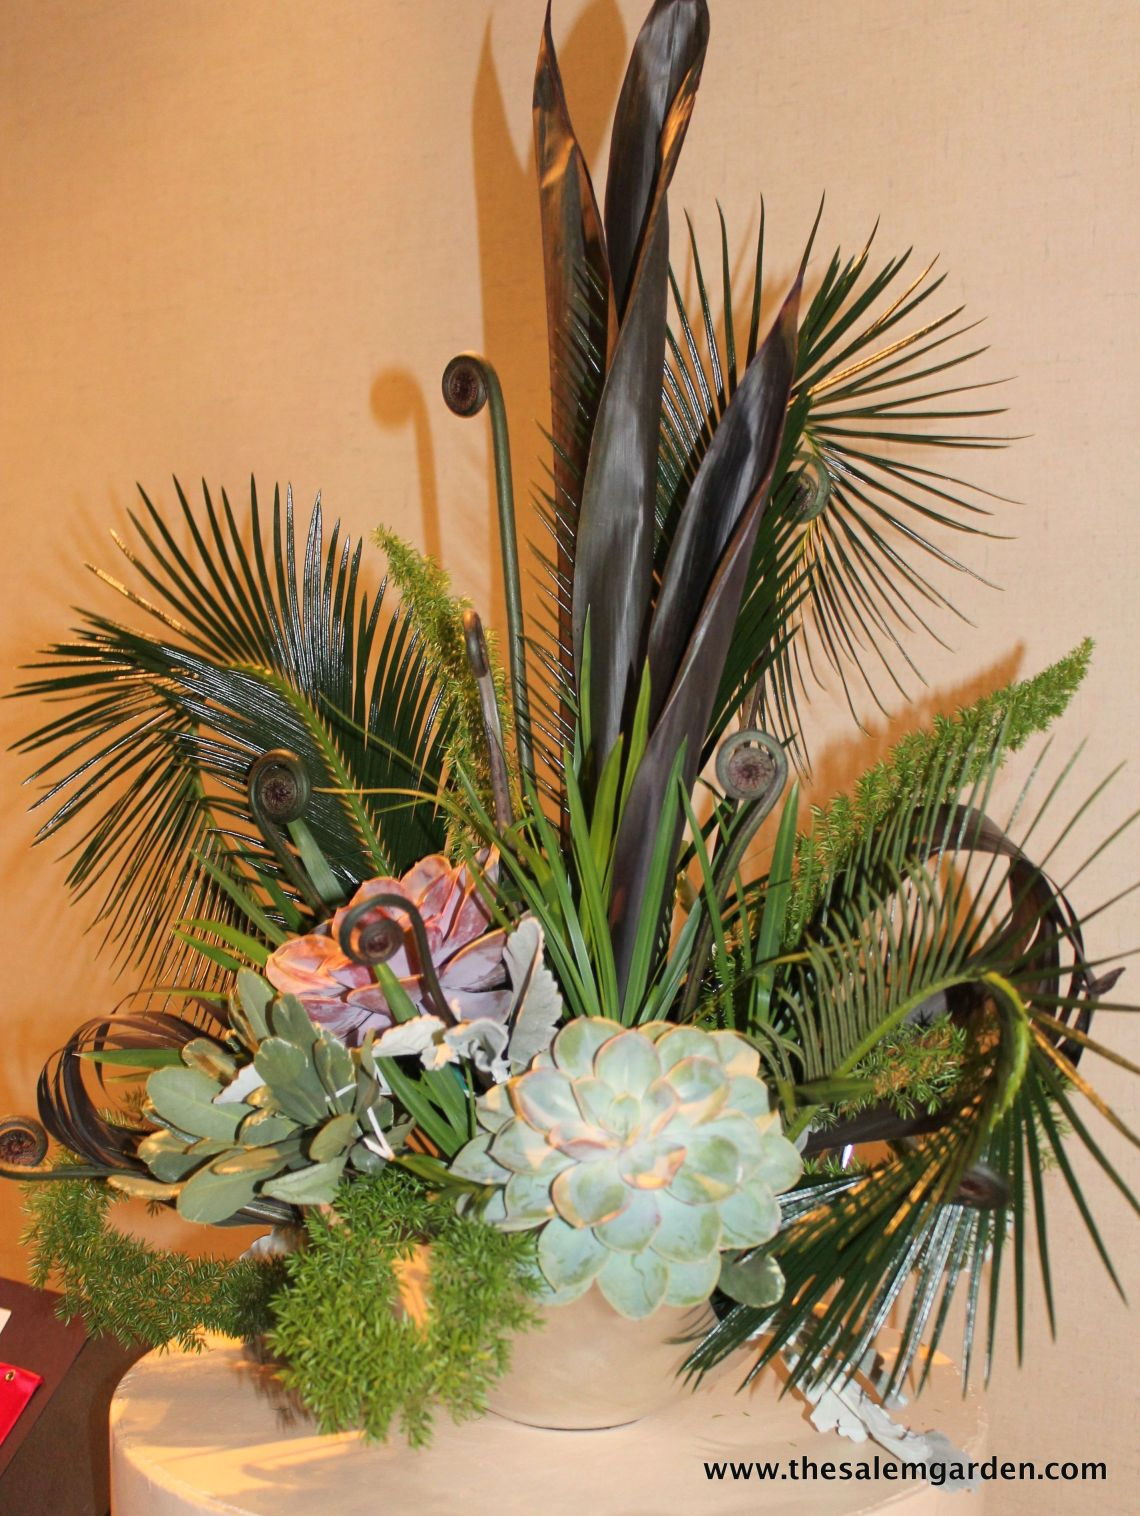 I love this use of succulents and ferns, an uncommon combination.